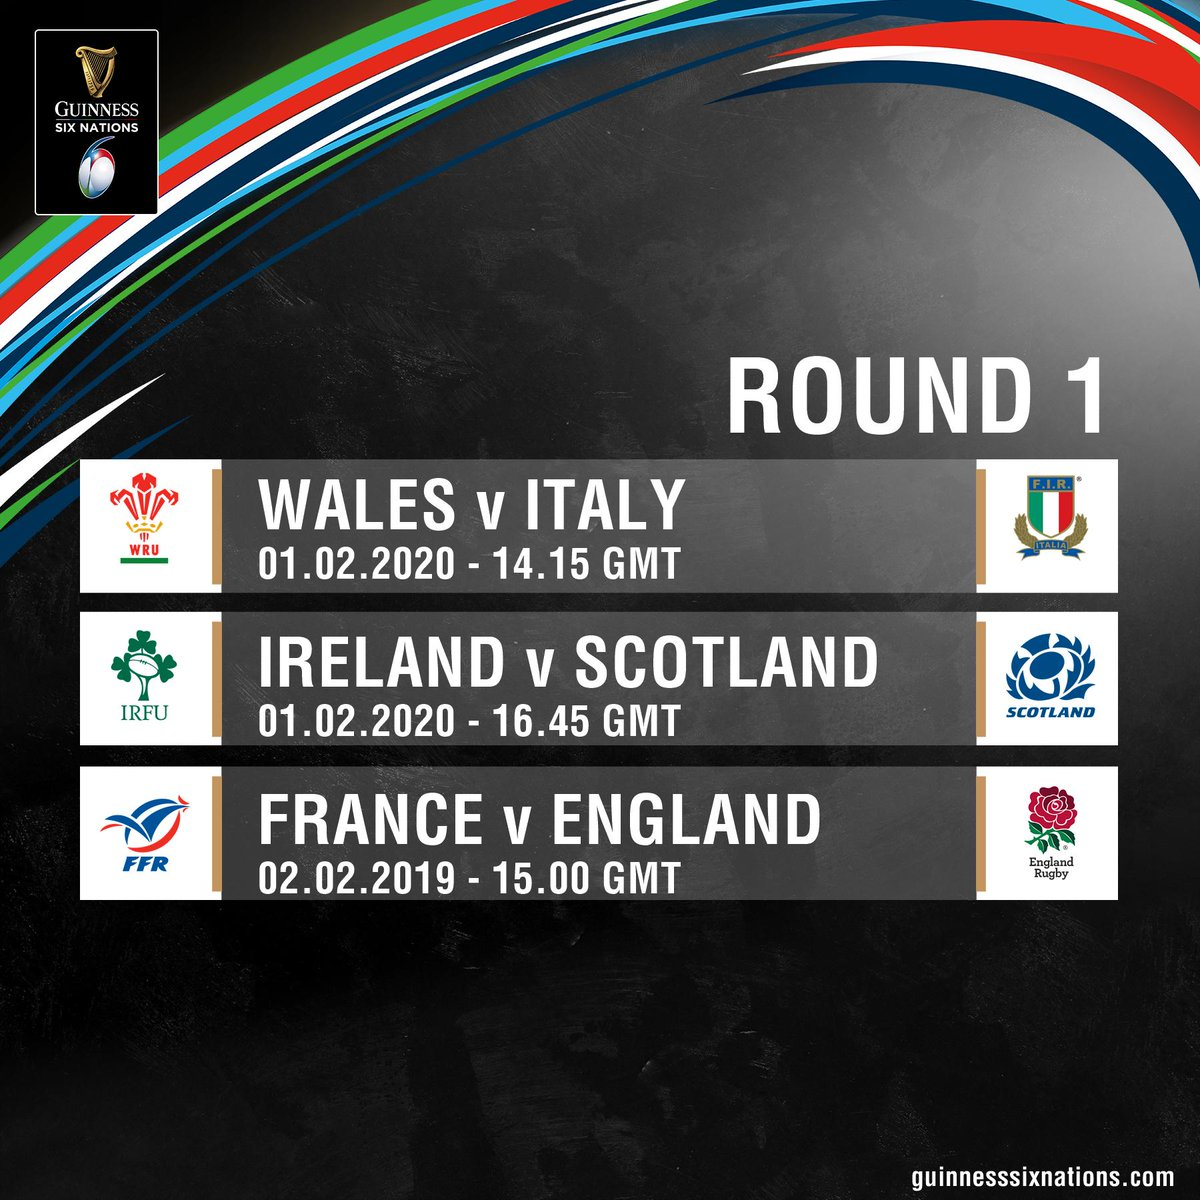 6c7851ee09d Guinness Six Nations on Twitter: